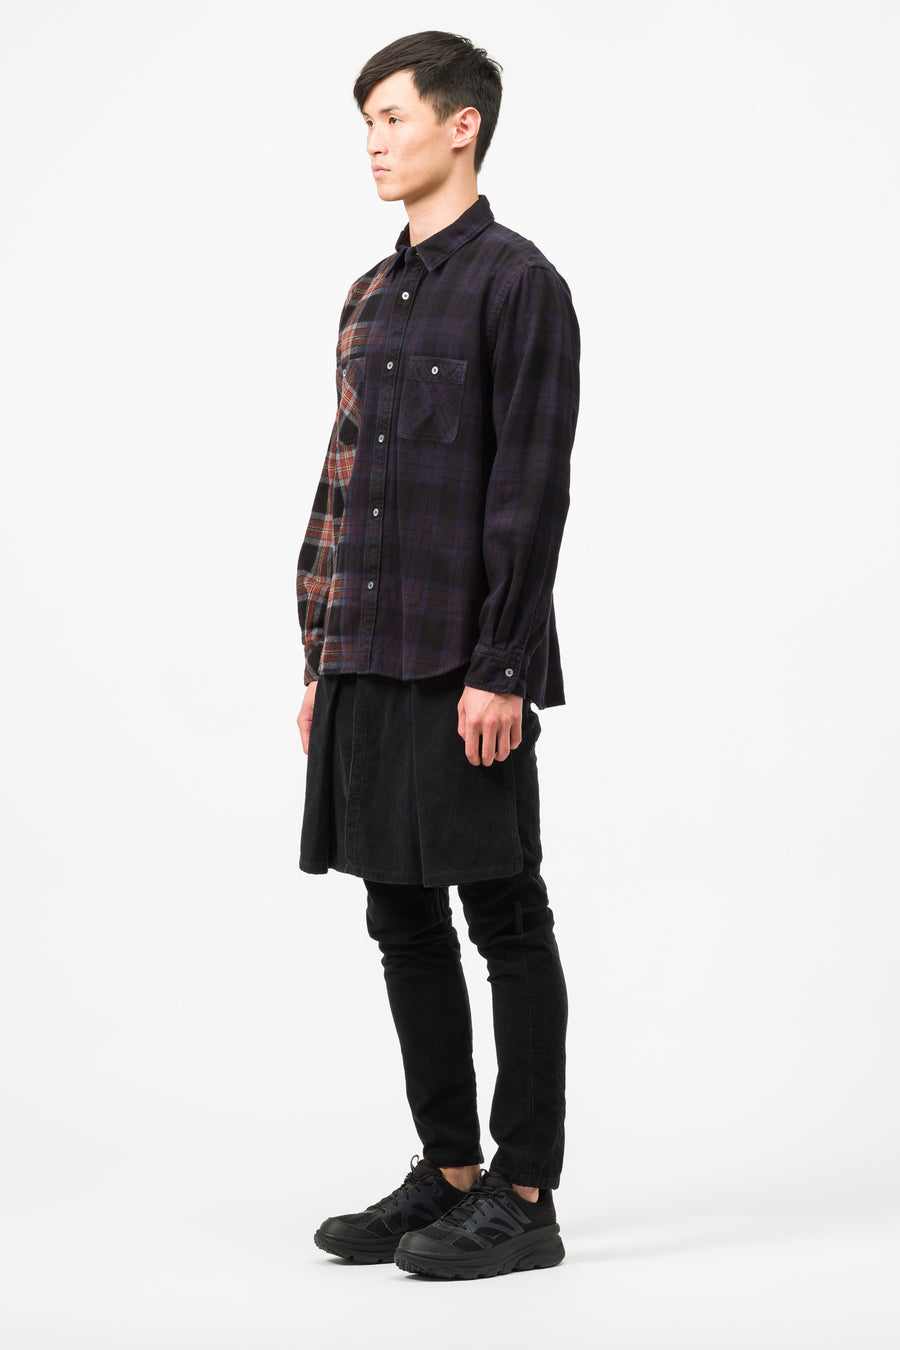 sacai Check Shirt in Navy/Brown - Notre